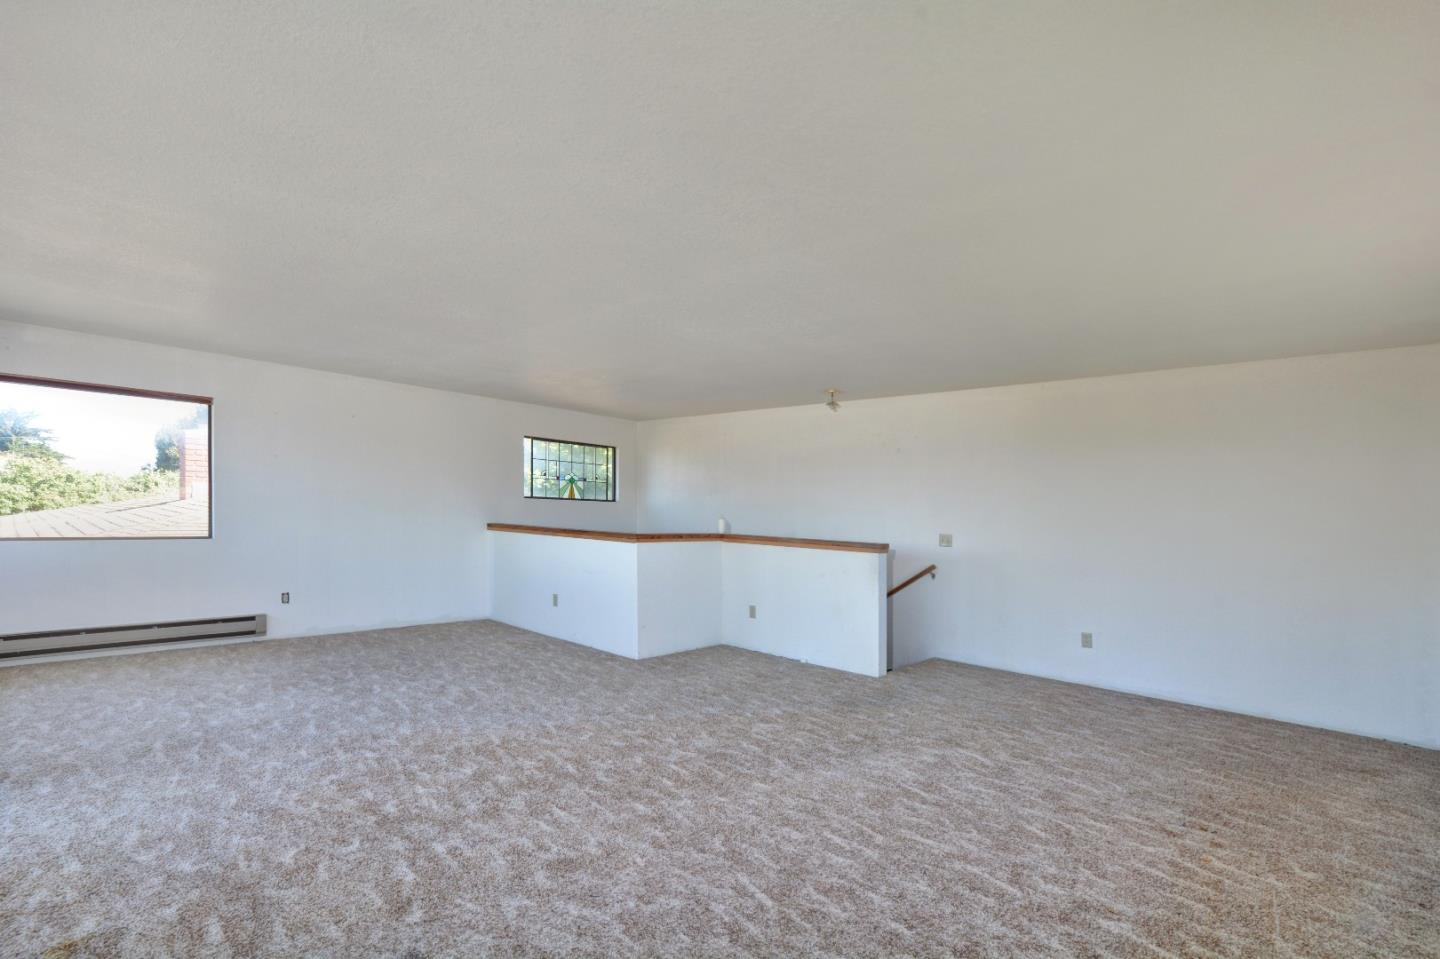 Additional photo for property listing at 1975 Military Avenue  Seaside, California 93955 United States